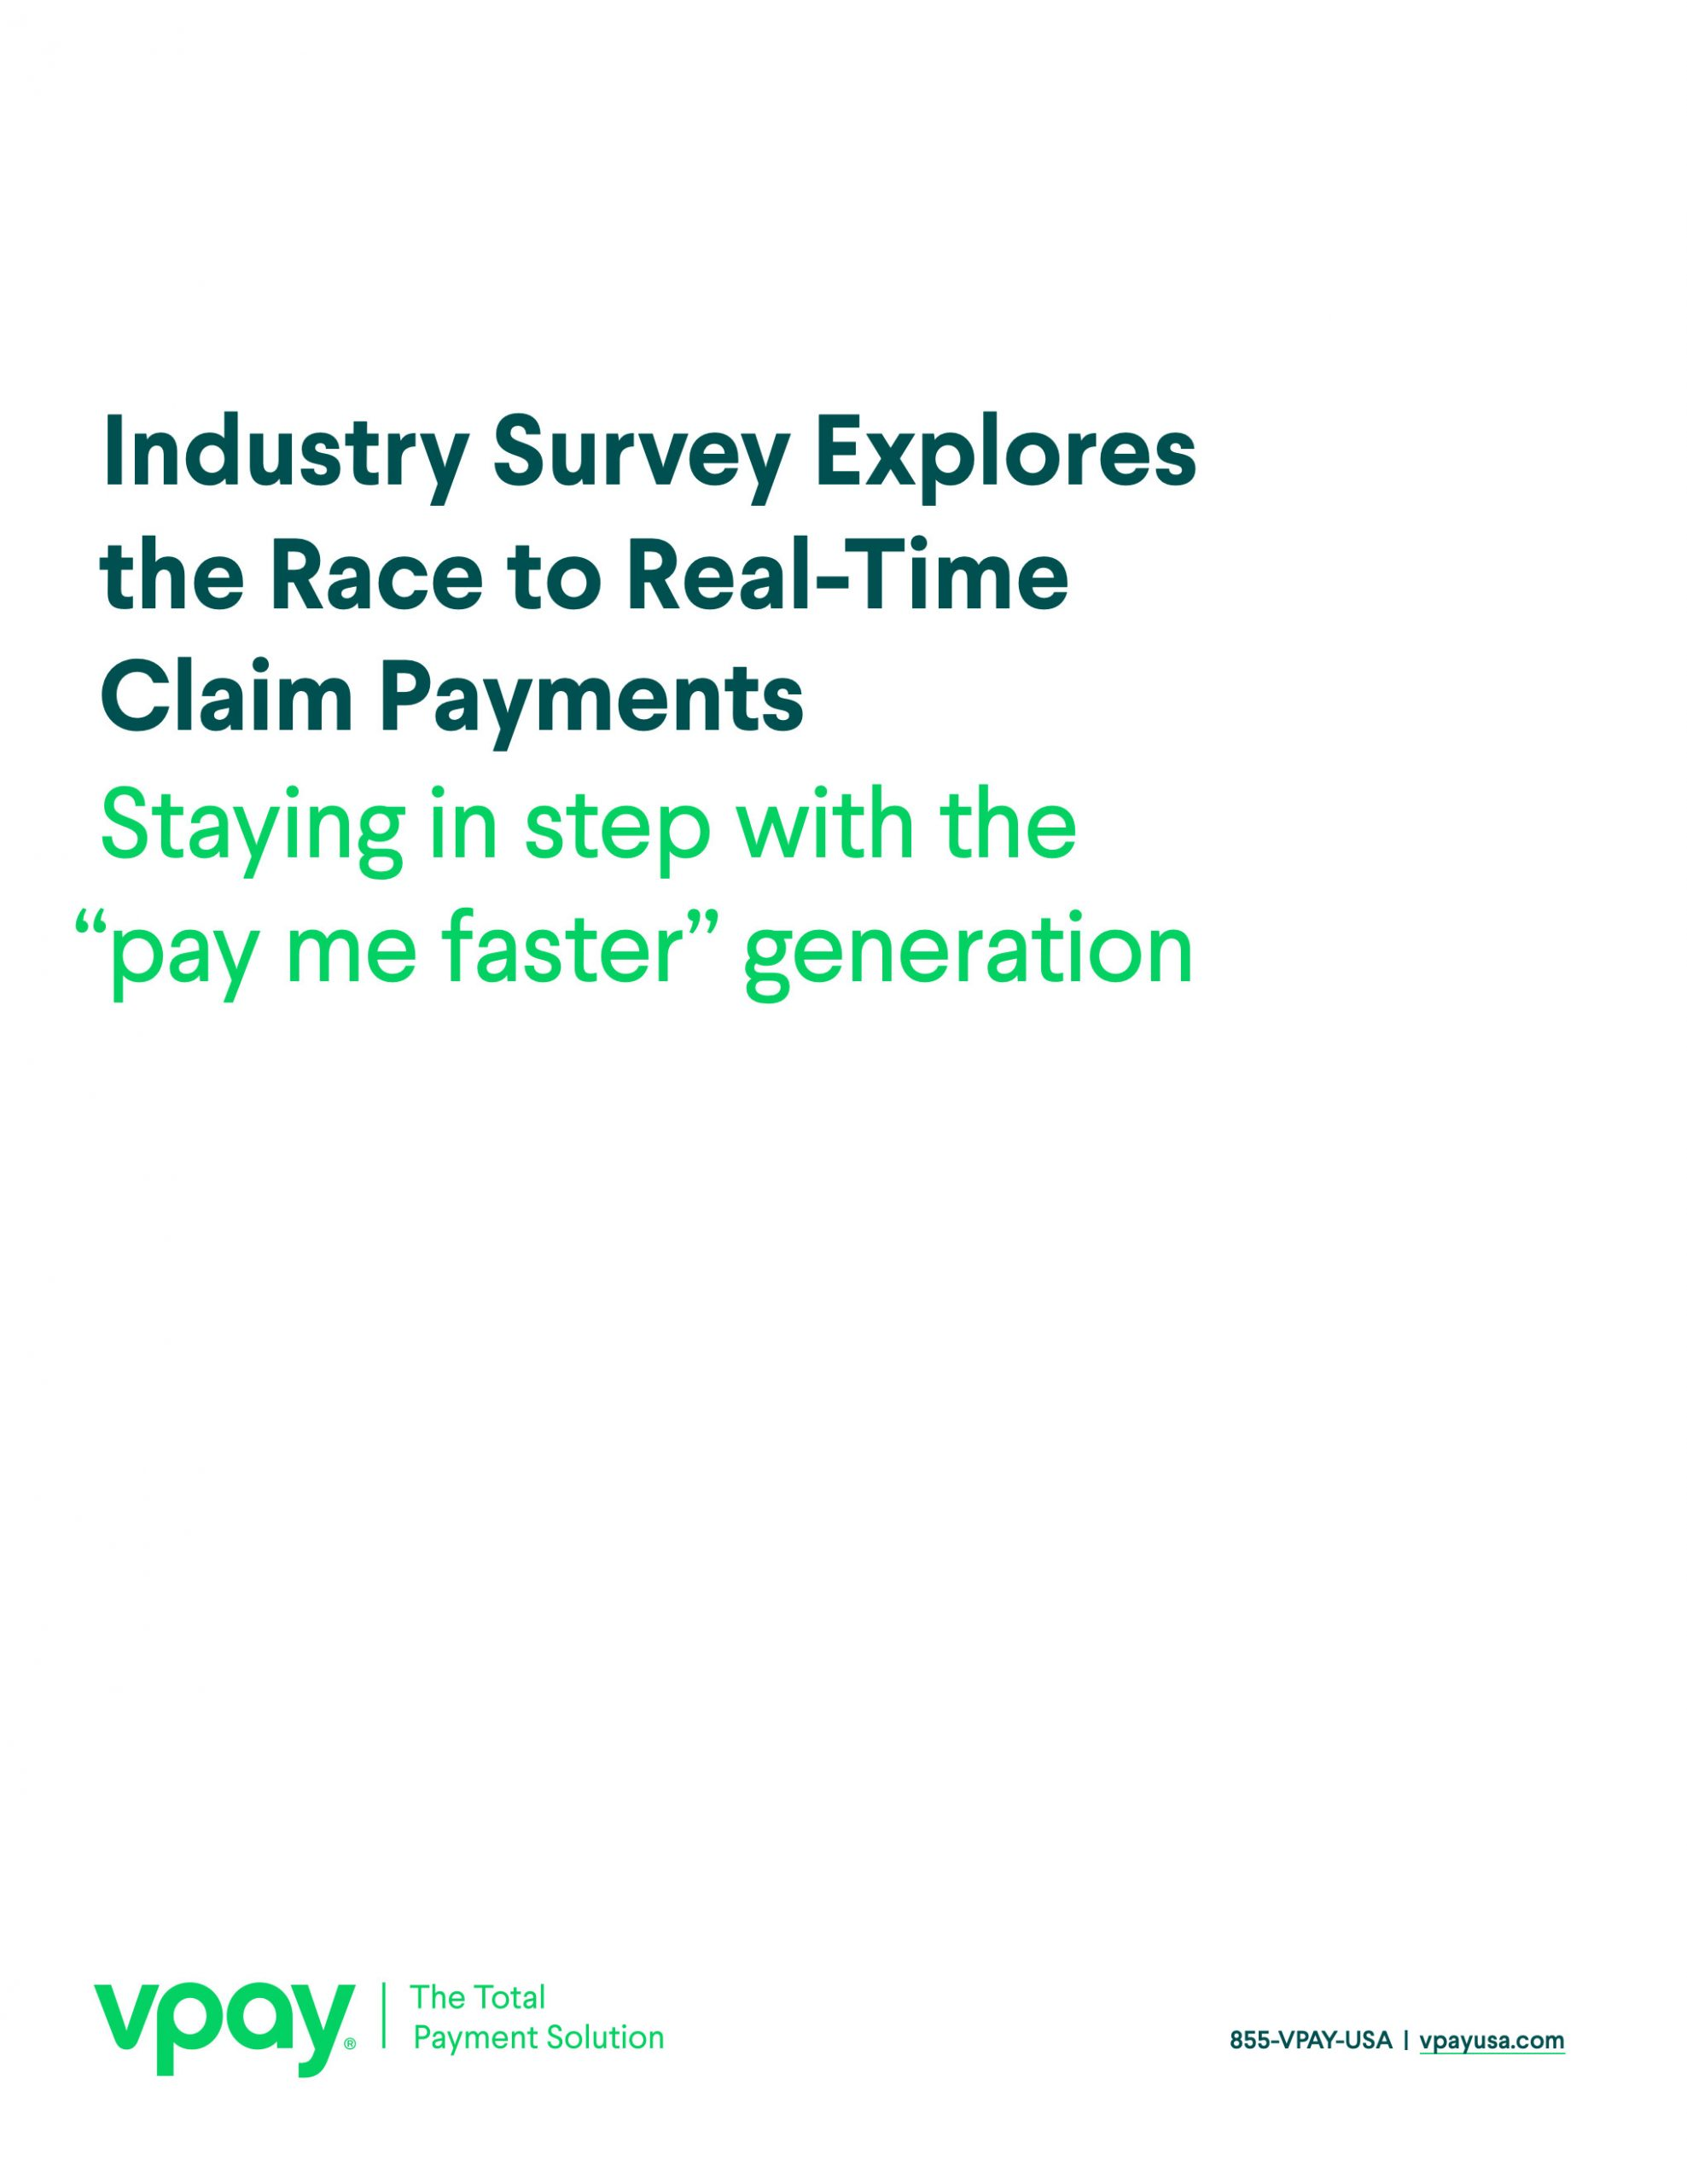 Industry Survey Explores the Race to Real-Time Claim Payments